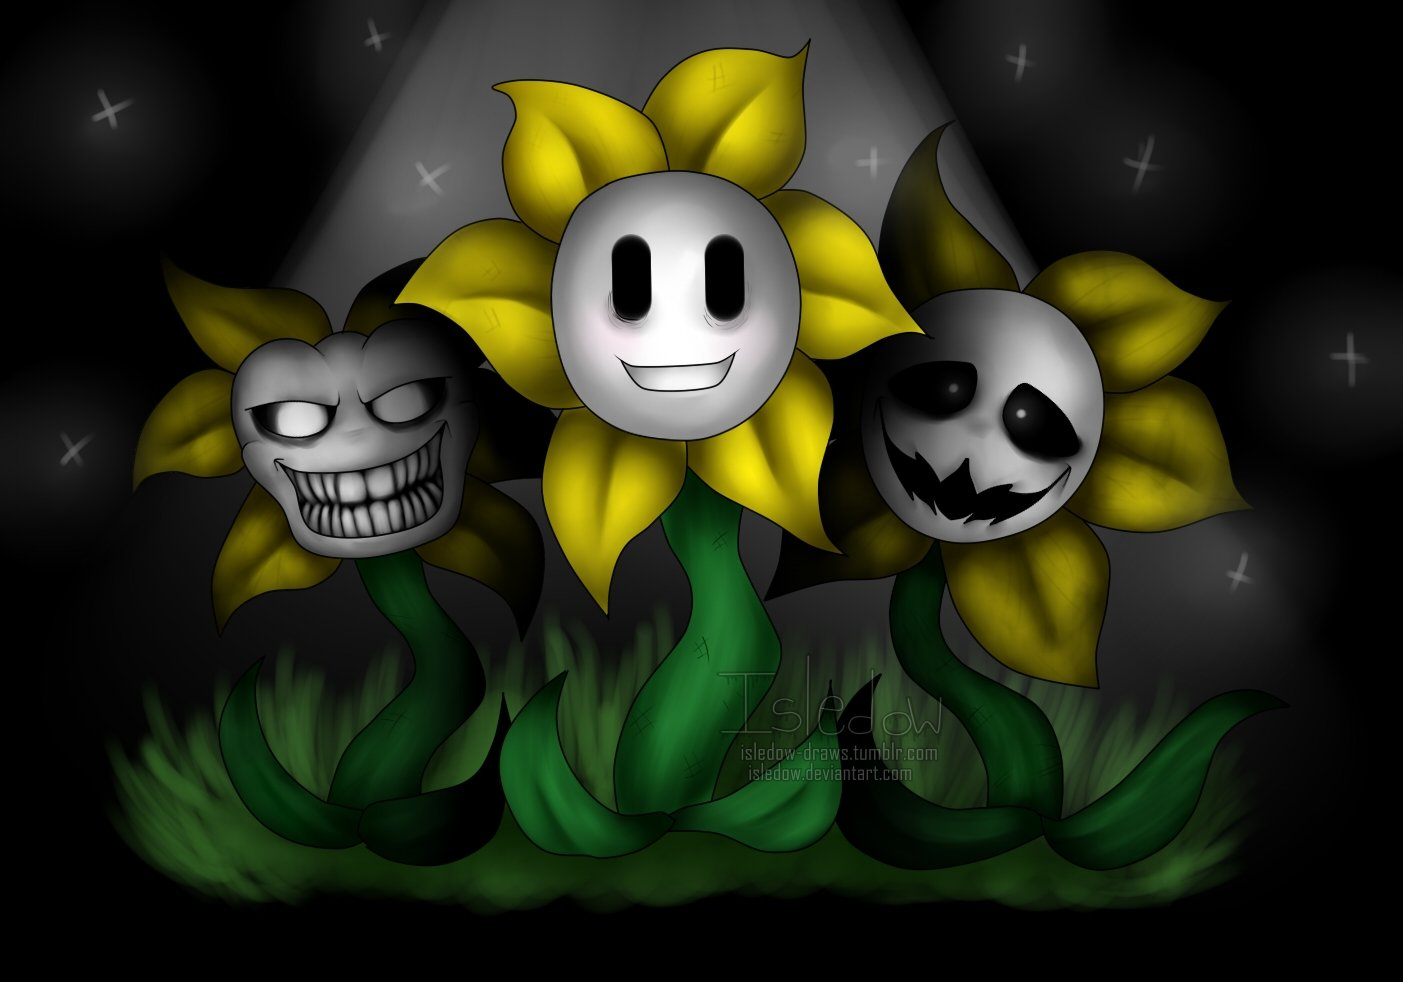 Undertale Flowey the Flower by Isledow 1403x982